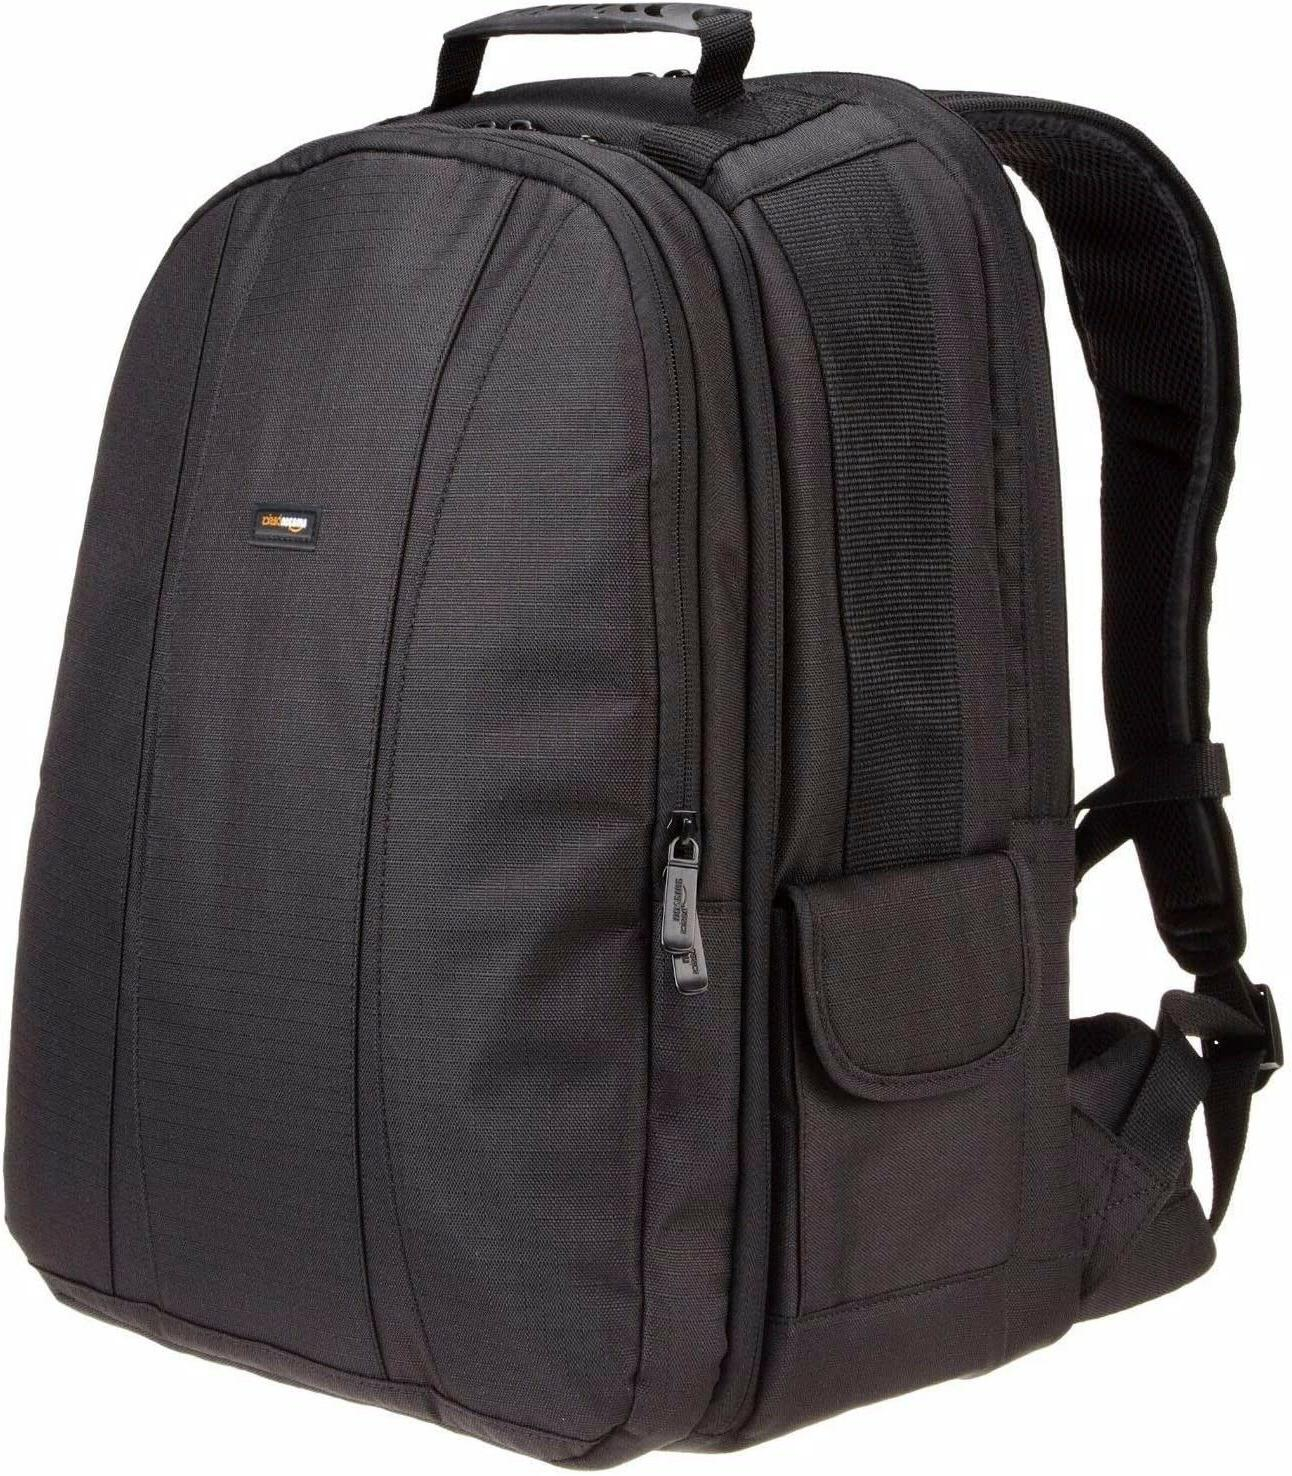 dslr and laptop backpack travel camera storage